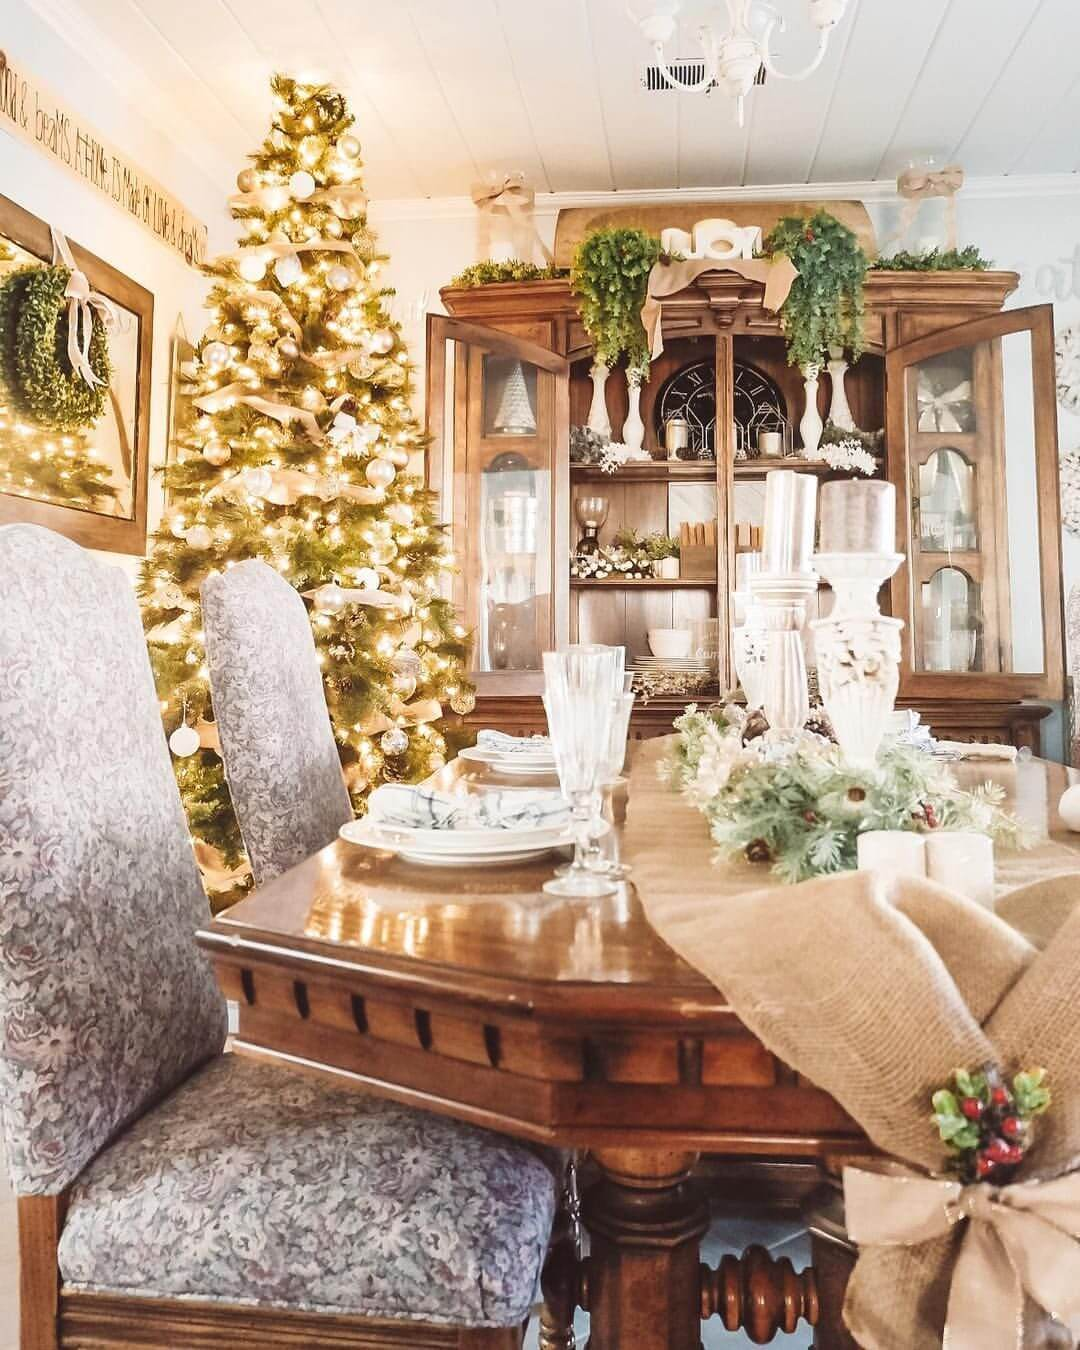 Holiday Home Design Ideas: Top 50 Christmas House Decorations Inside